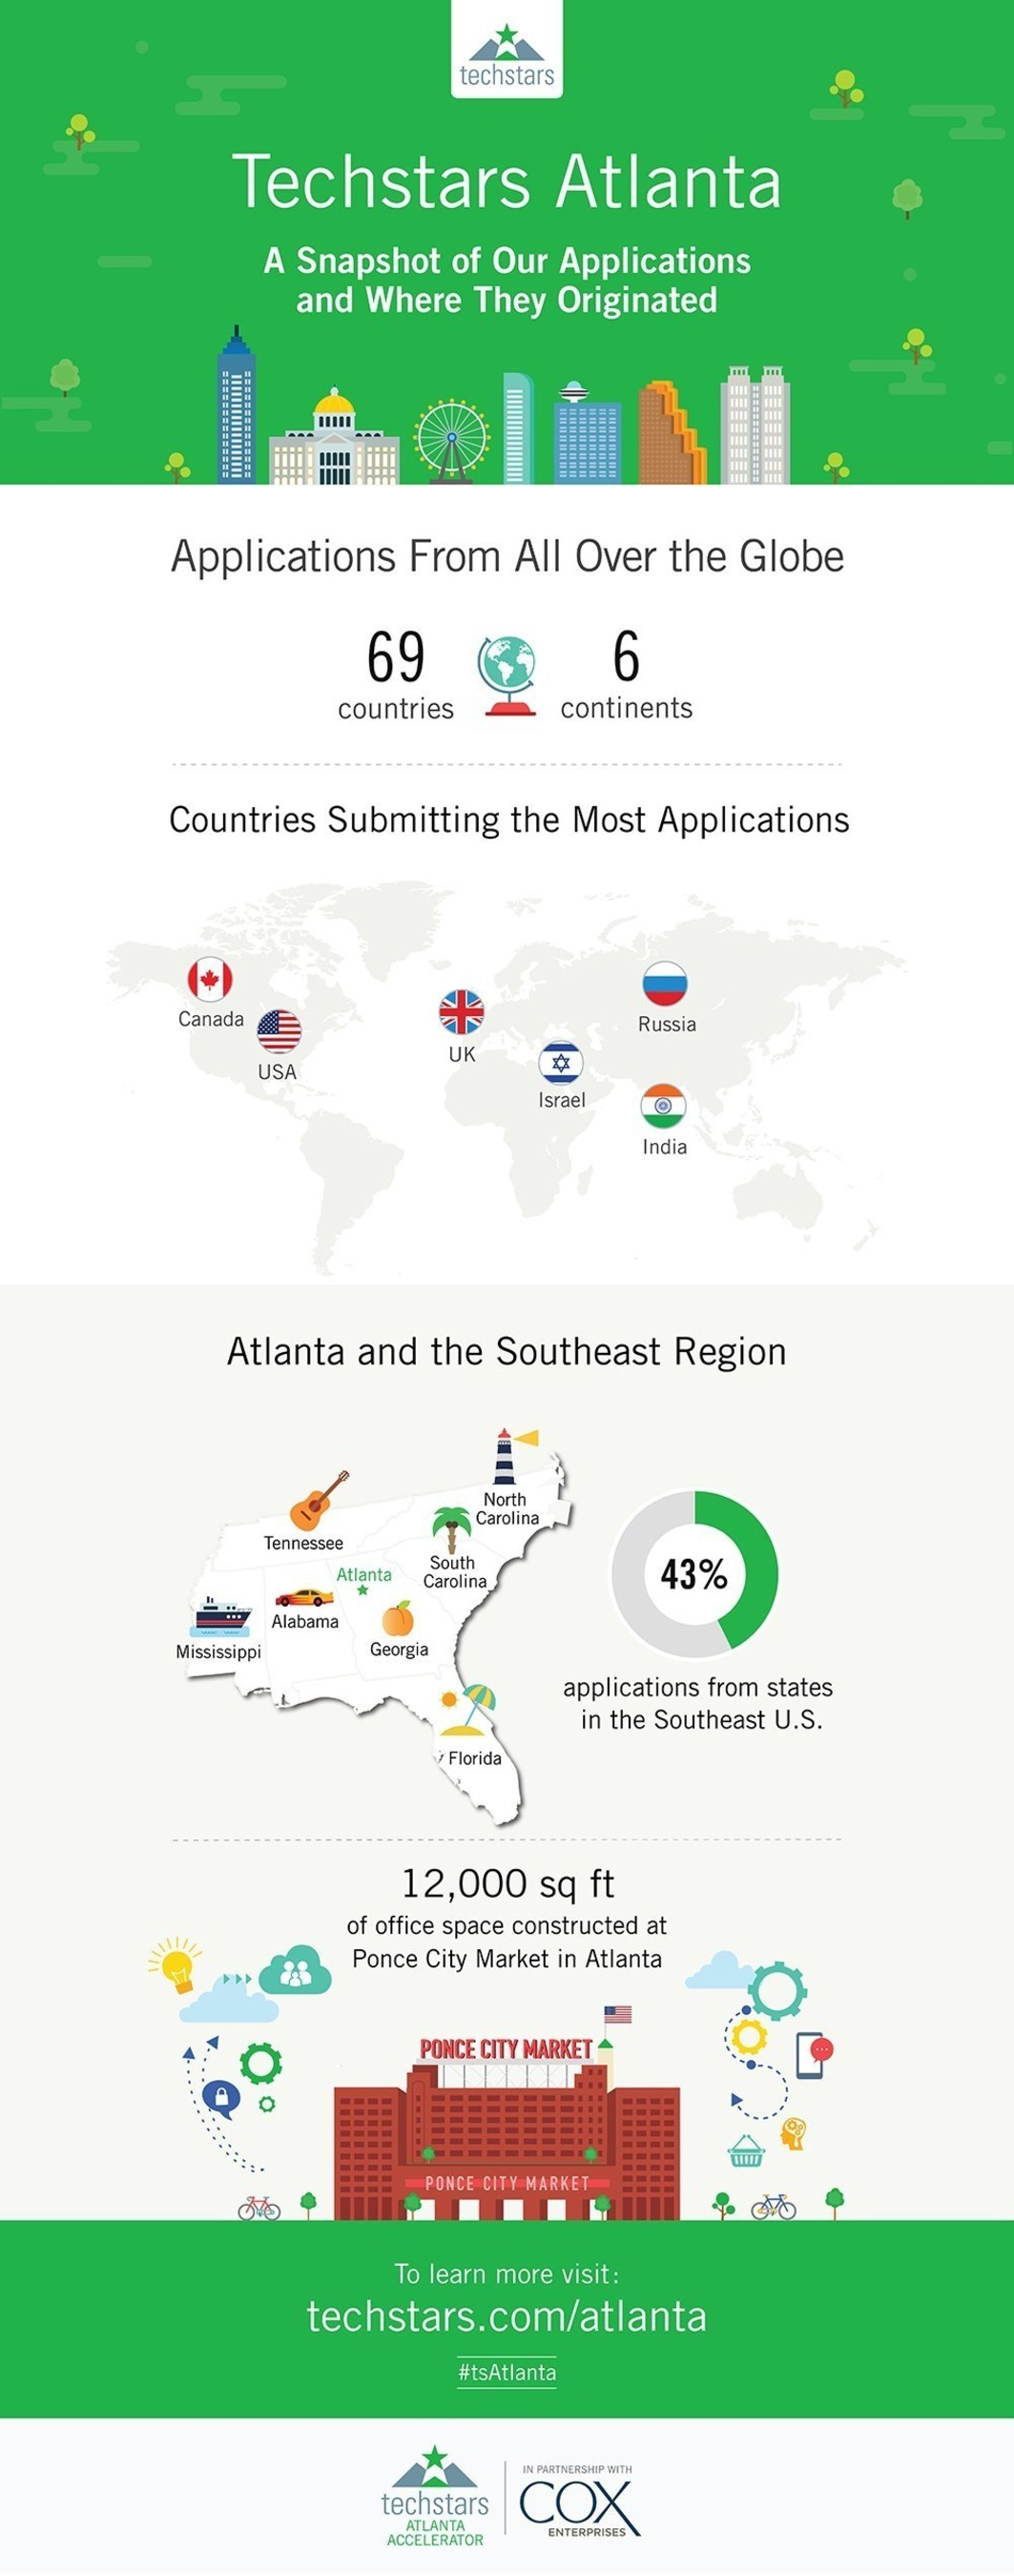 Techstars Atlanta received applications from 69 countries and six continents.